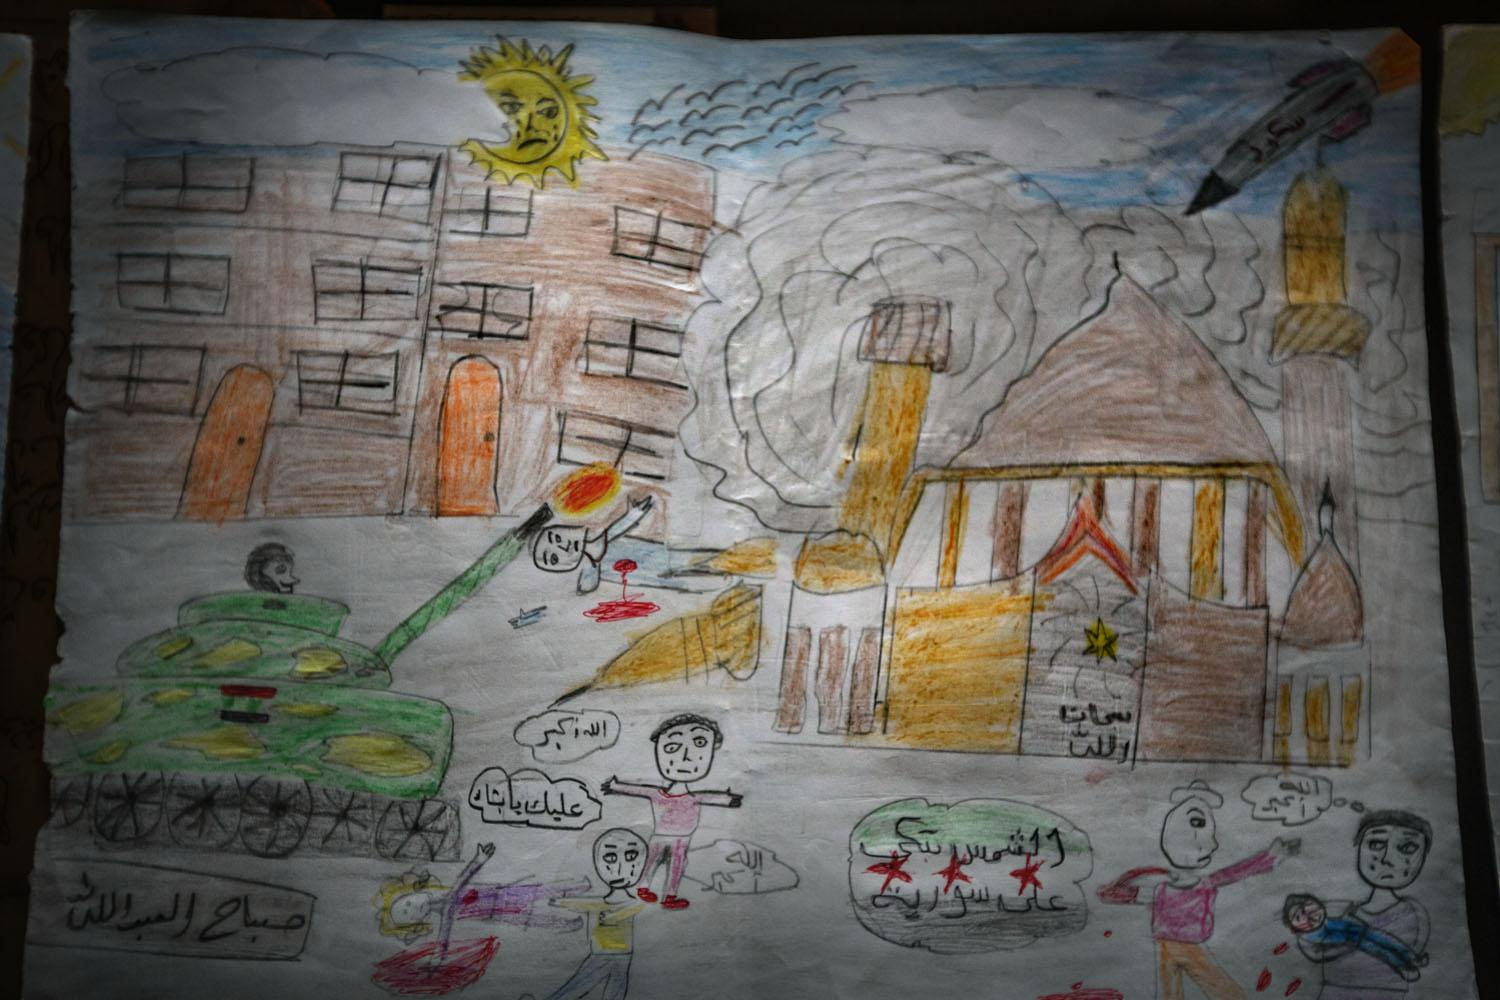 """Drawing by an 11-year-old boy named Sabah Al Abdullah with scenes of death and destruction of civilians that he witnessed in the city of Aleppo. On the Syrian flag adopted by the Revolution (lower right margin) """"The sun weeps for Syria"""" can be read. This was the Syrian flag of 1930. It was also the country's official flag during the process of independence until 1932, and its later participation in and occupation during World War II, until it joined the United Arab Republic. After Syria left the Union in 1961, the previous independence flag was re-adopted to disassociate Syria from the failed Union until 1963. Since then, the flag had not been used in an official capacity until the outbreak of the civil war (Syria, 2012)."""